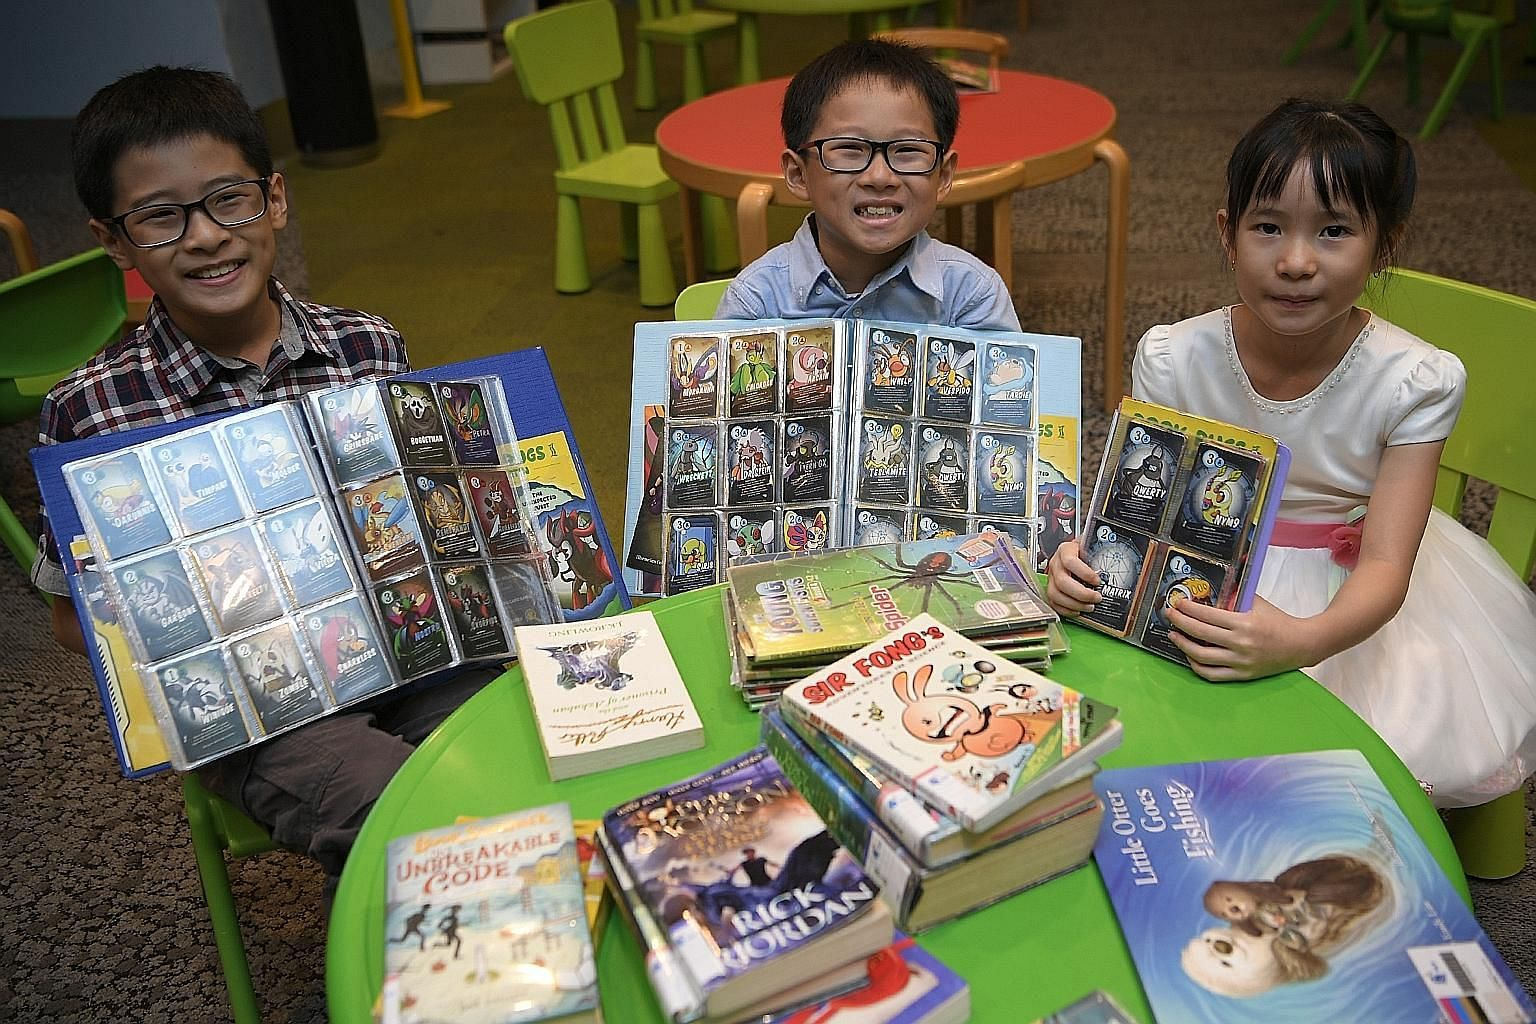 Ilika Motani, 10, and her brother, Darshan Motani, six, are avid Book Bugs card collectors. Lucian Lee, eight, and Lukas Lee, four, with their parents, Ms Chanelle Lim and Mr Larry Lee, taking part in a National Heritage Board's Heritage Explorers Pr